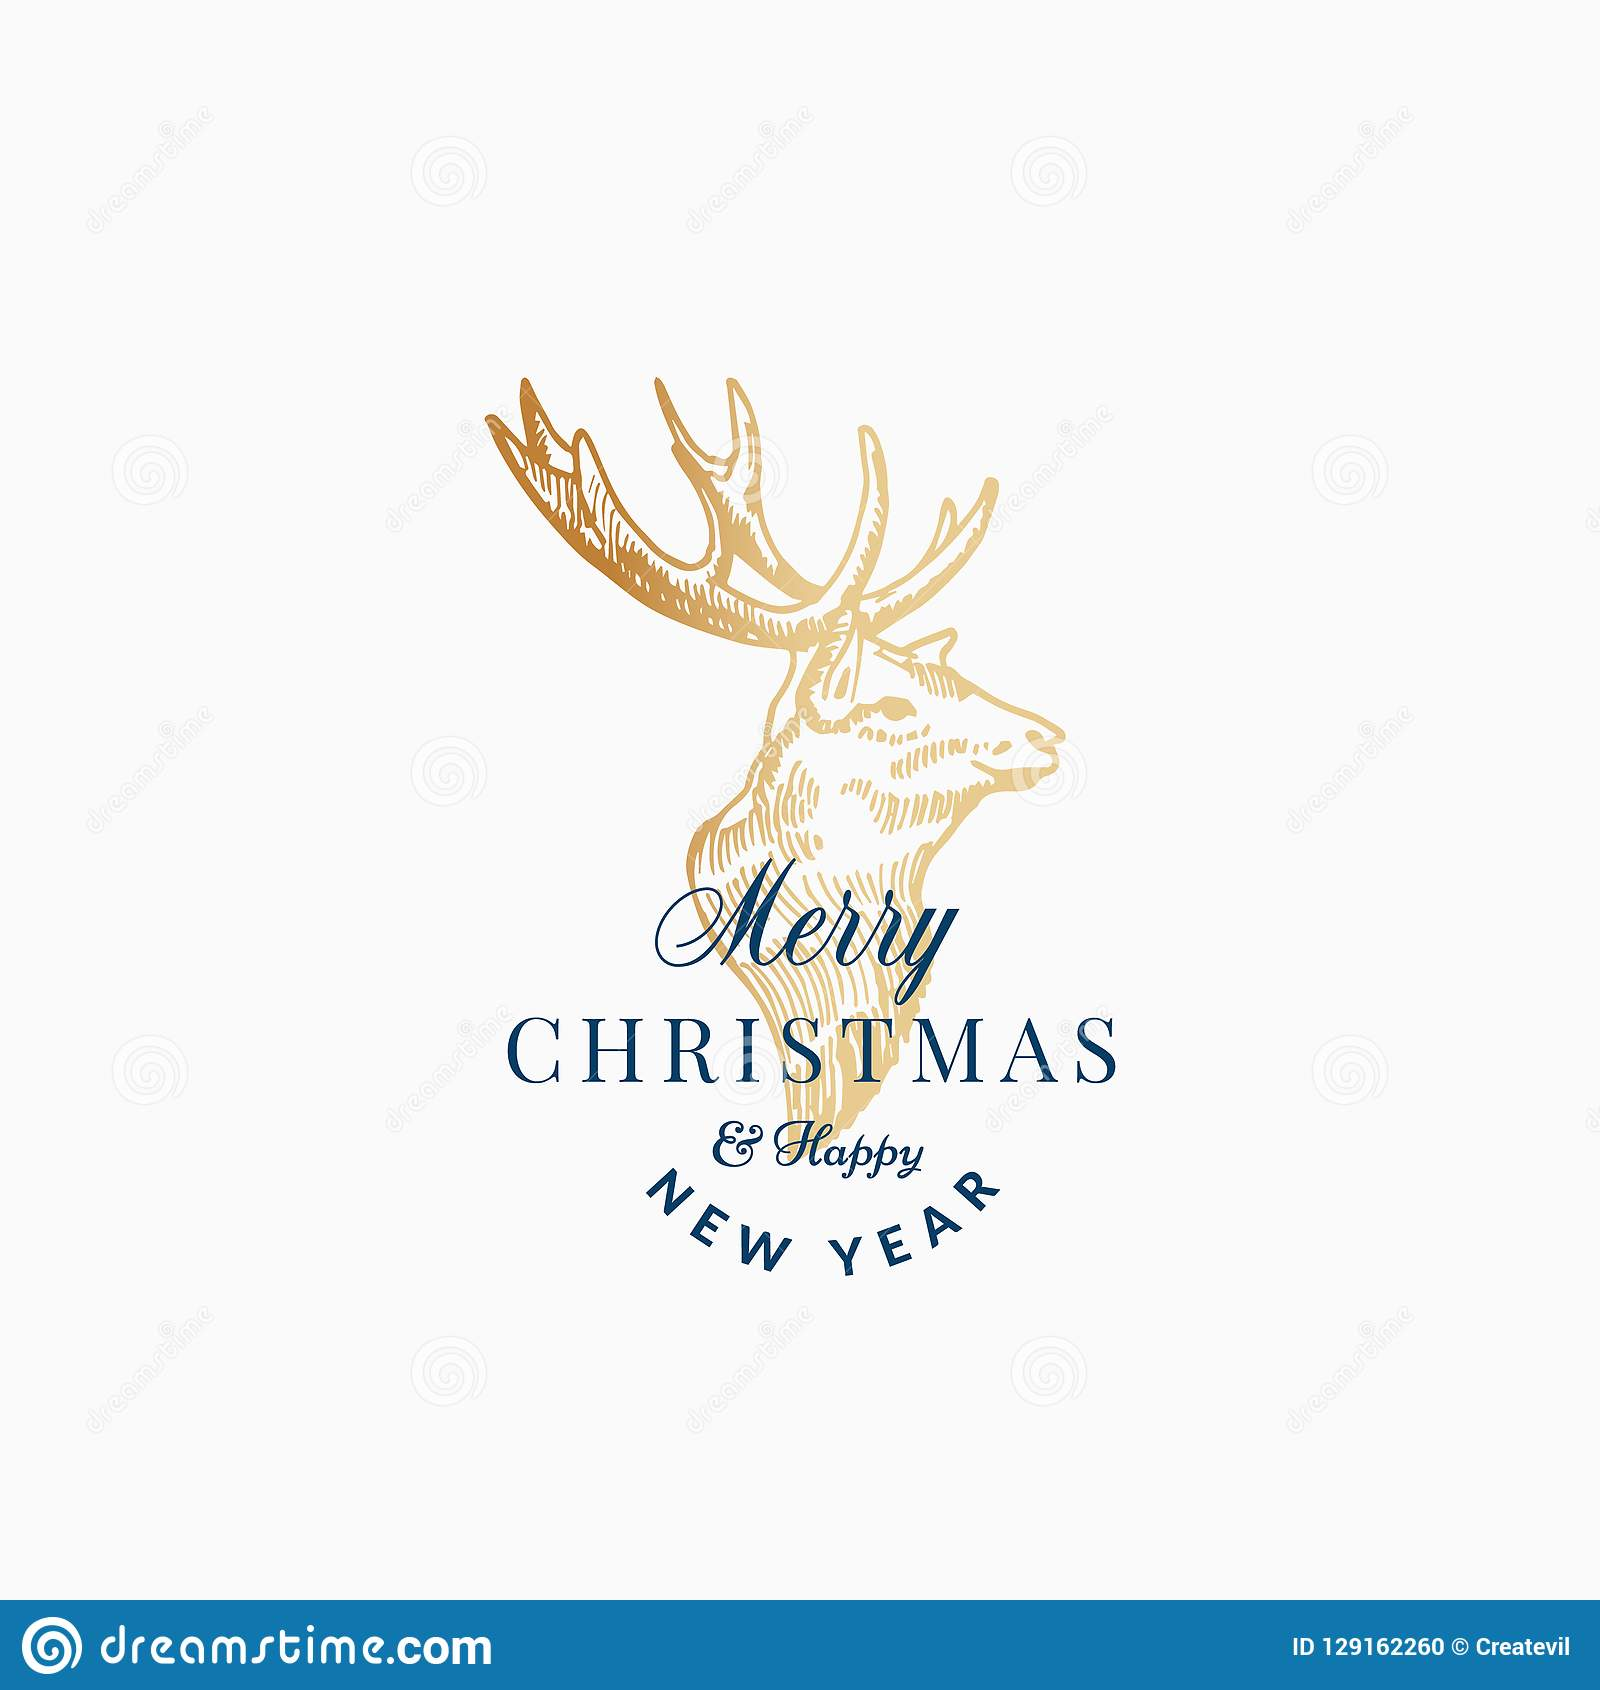 Merry Christmas Abstract Vector Retro Label Sign Or Card Template Hand Drawn Golden Reindeer Deer Head Sketch Illustration With Vintage Typography